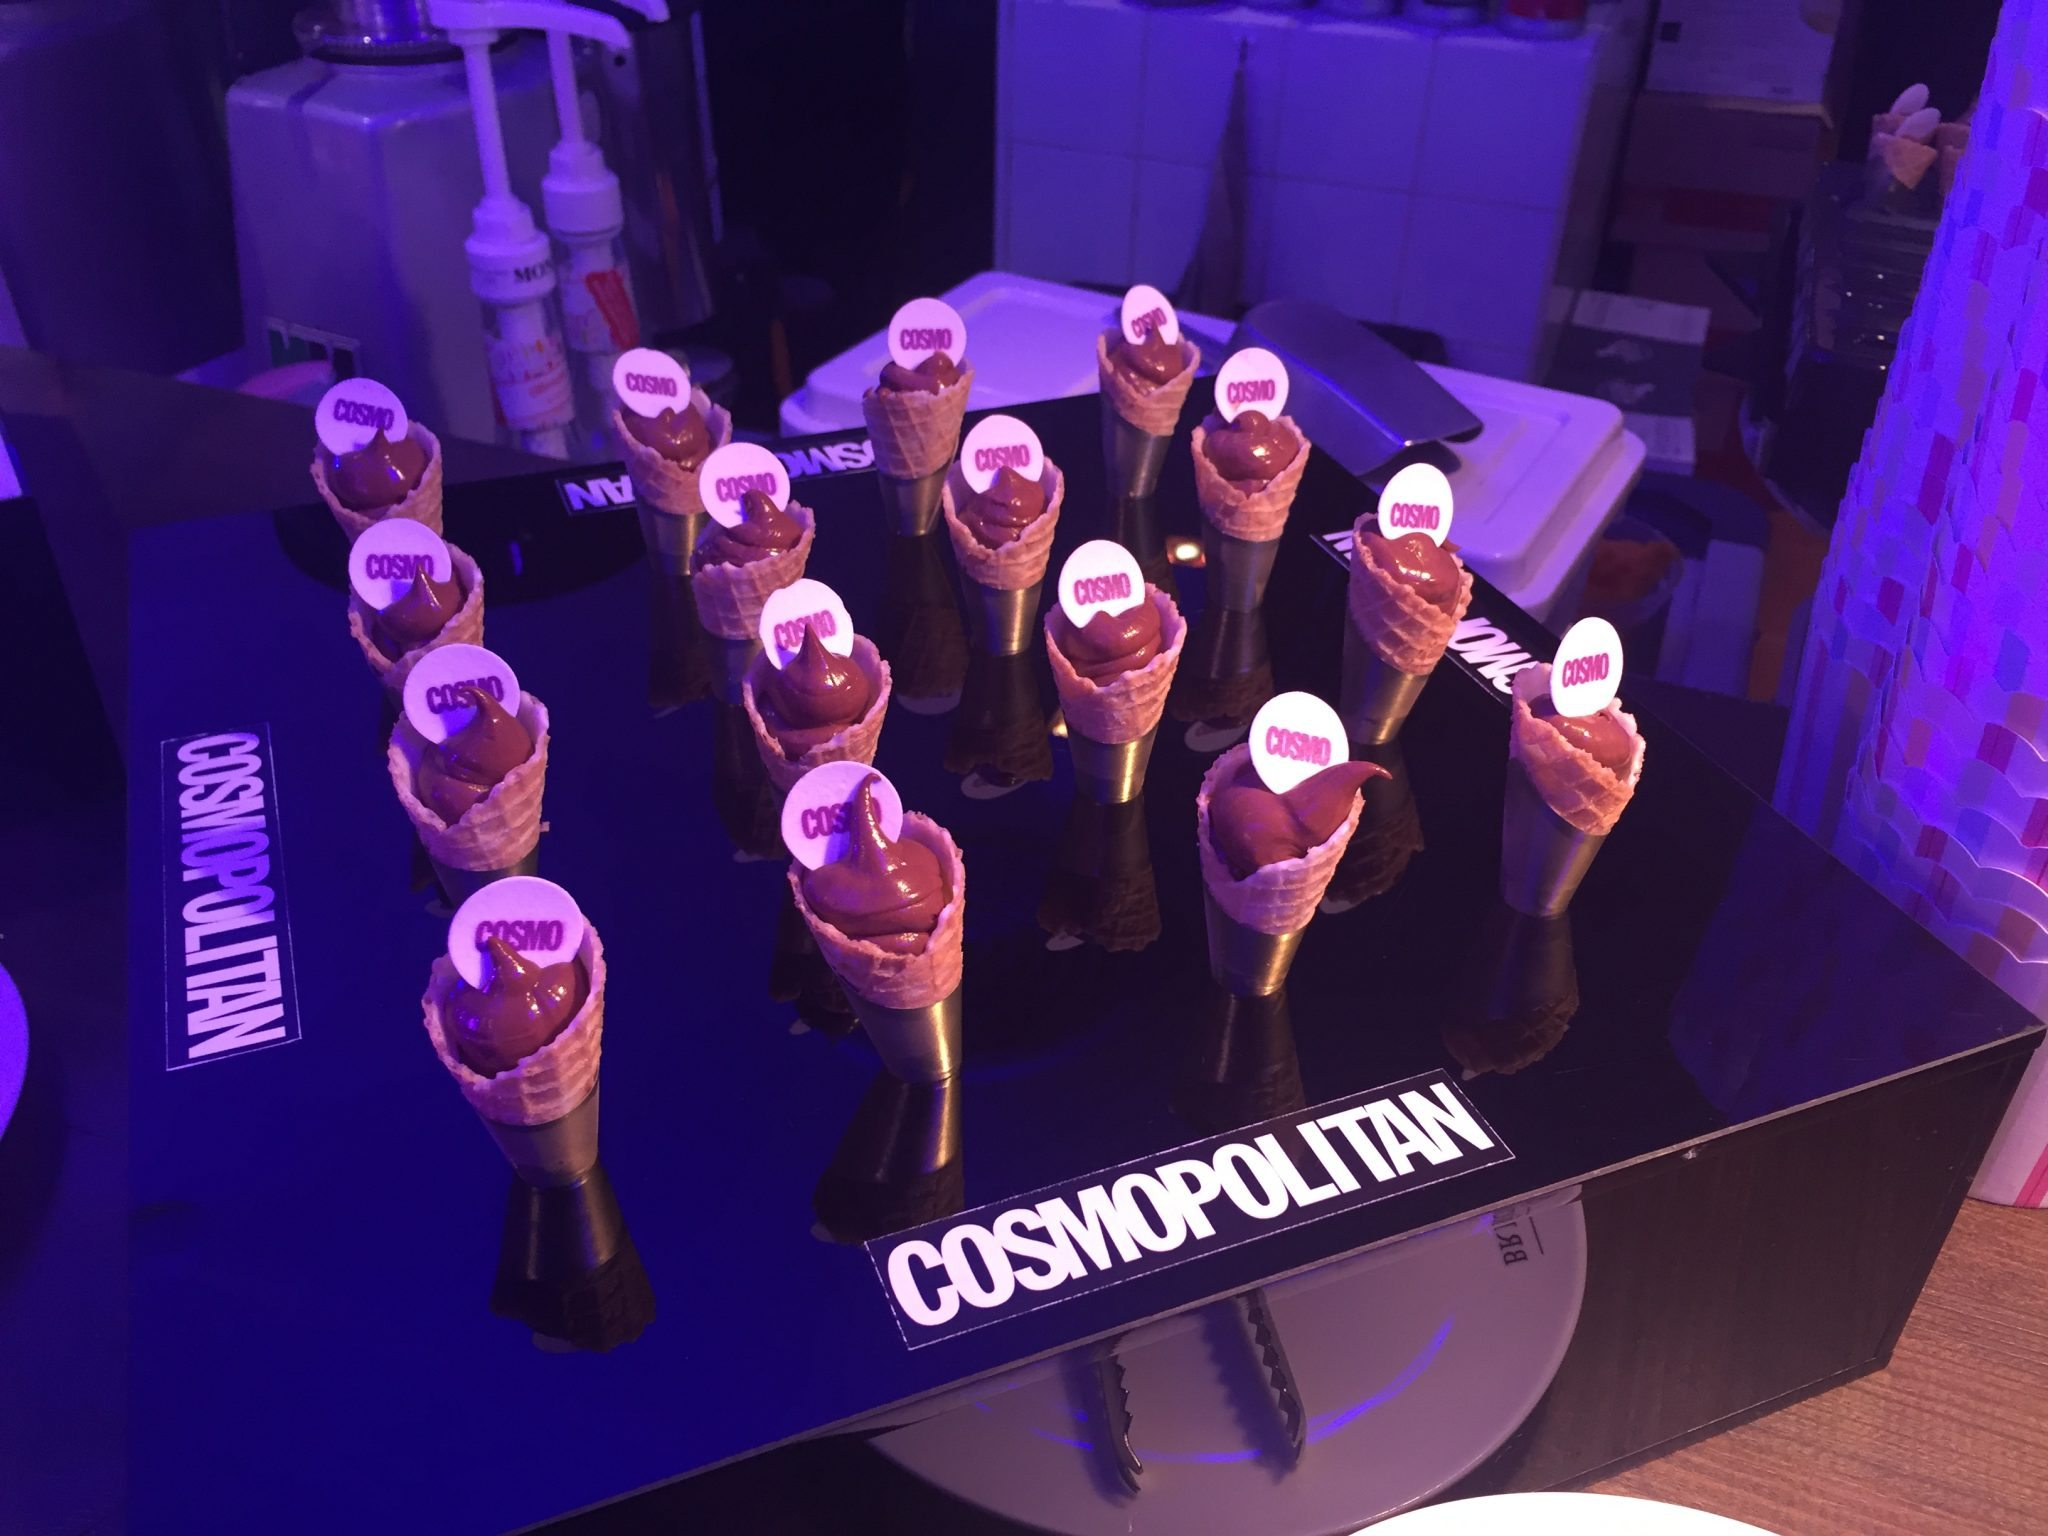 COSMO blogger event at BRICK LANE Admiralty